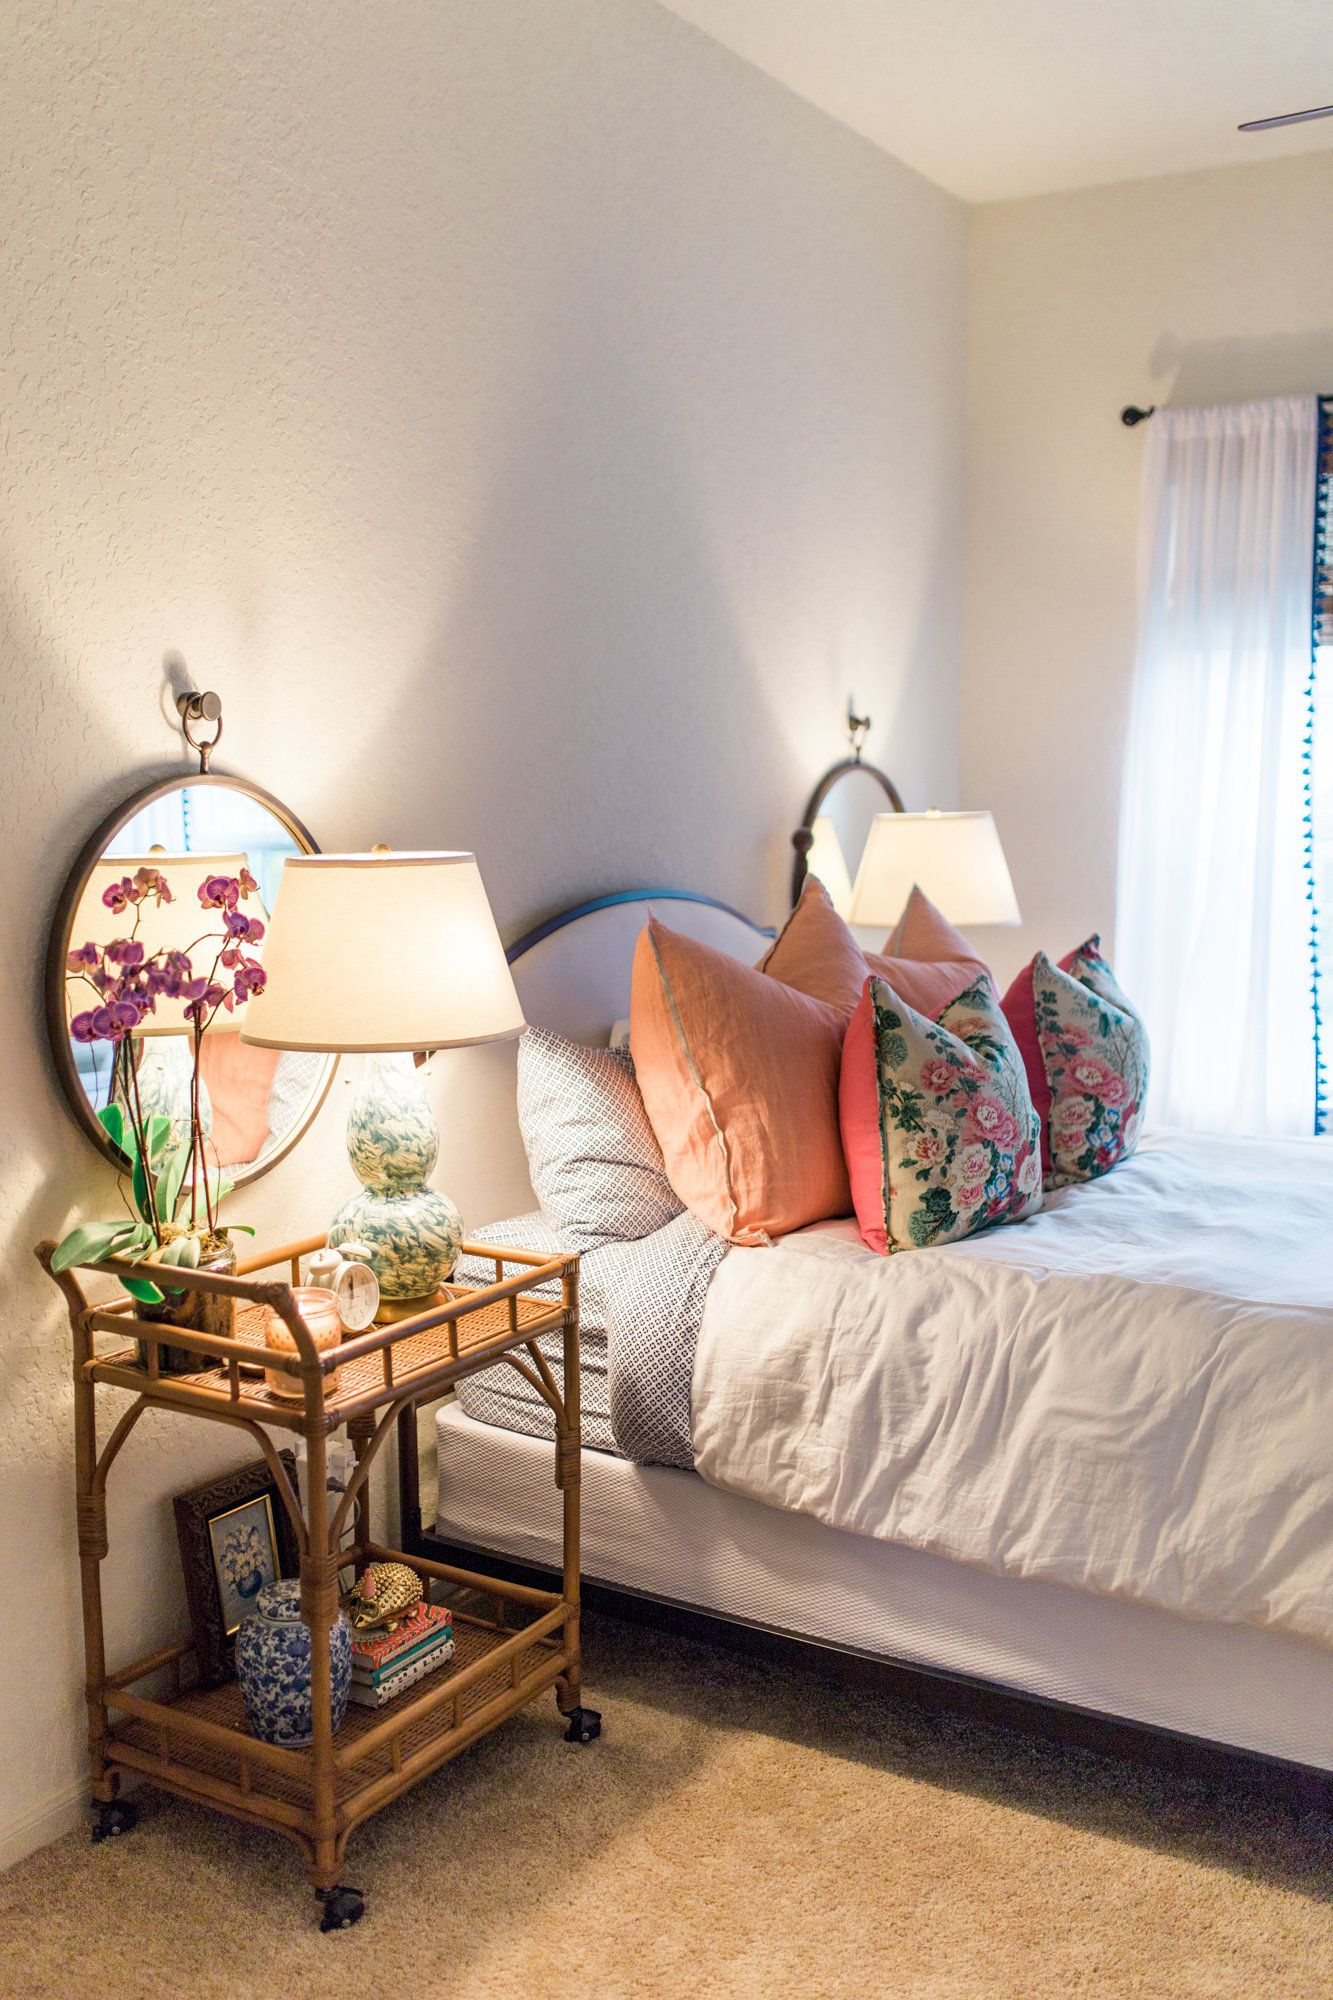 Master bedroom curtains  guest bedroom idea  Room Decor  Pinterest  Bedrooms Room and